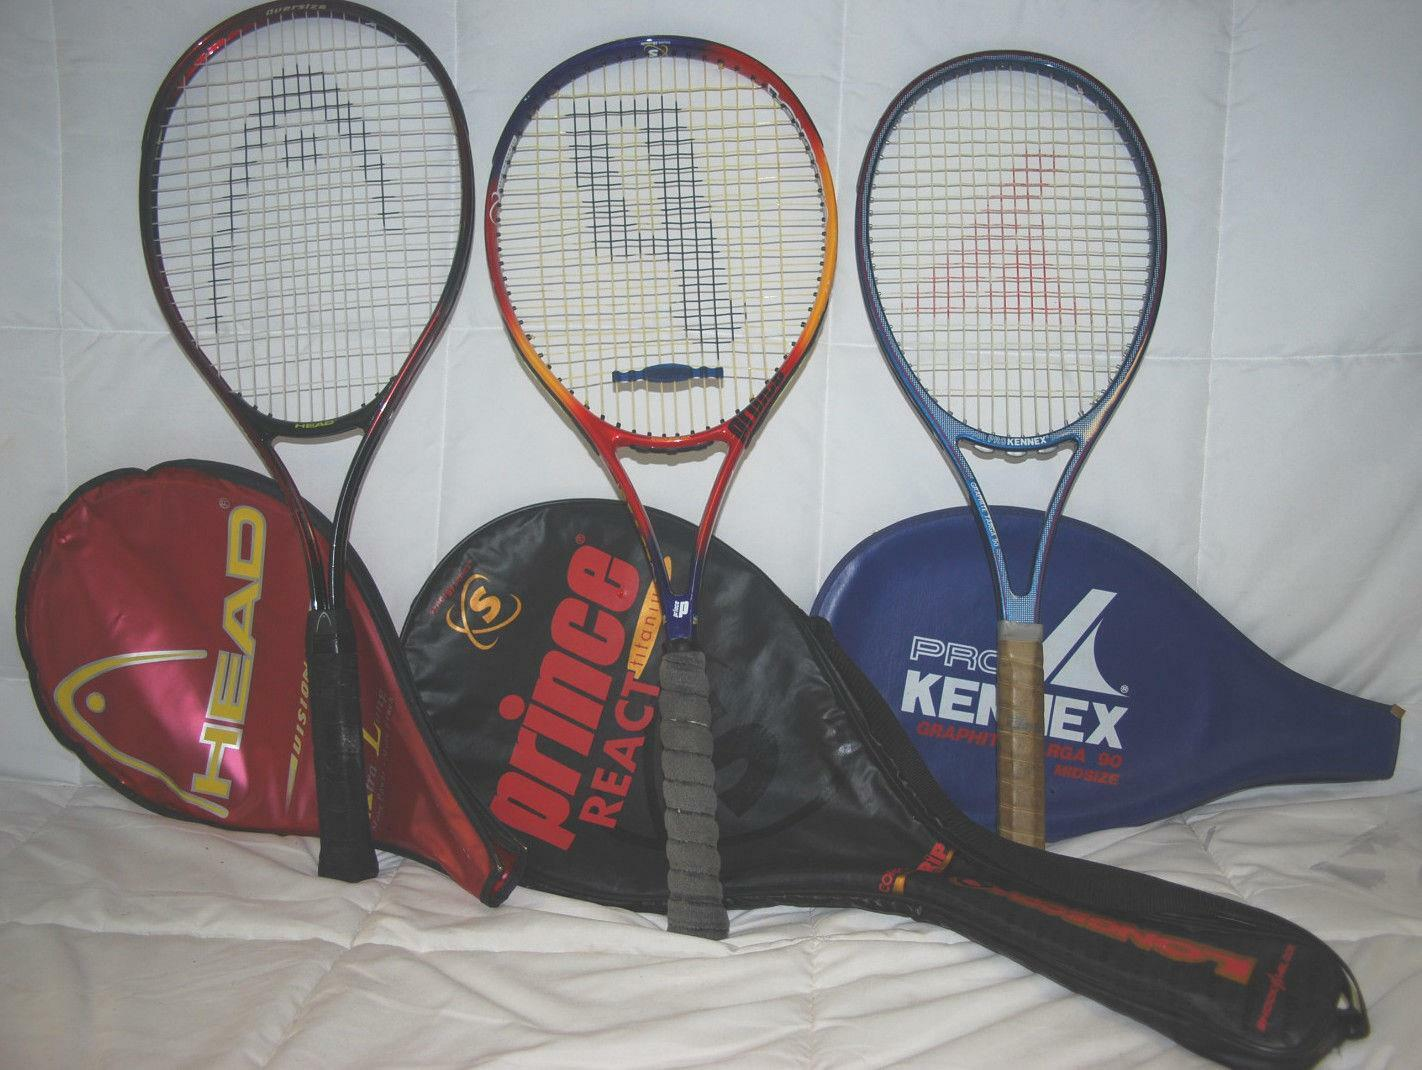 PRINCE FUSION LONGBODY 107, PRO KENNEX 90, HEAD VISION XL TENNIS RACQUETS W BAGS